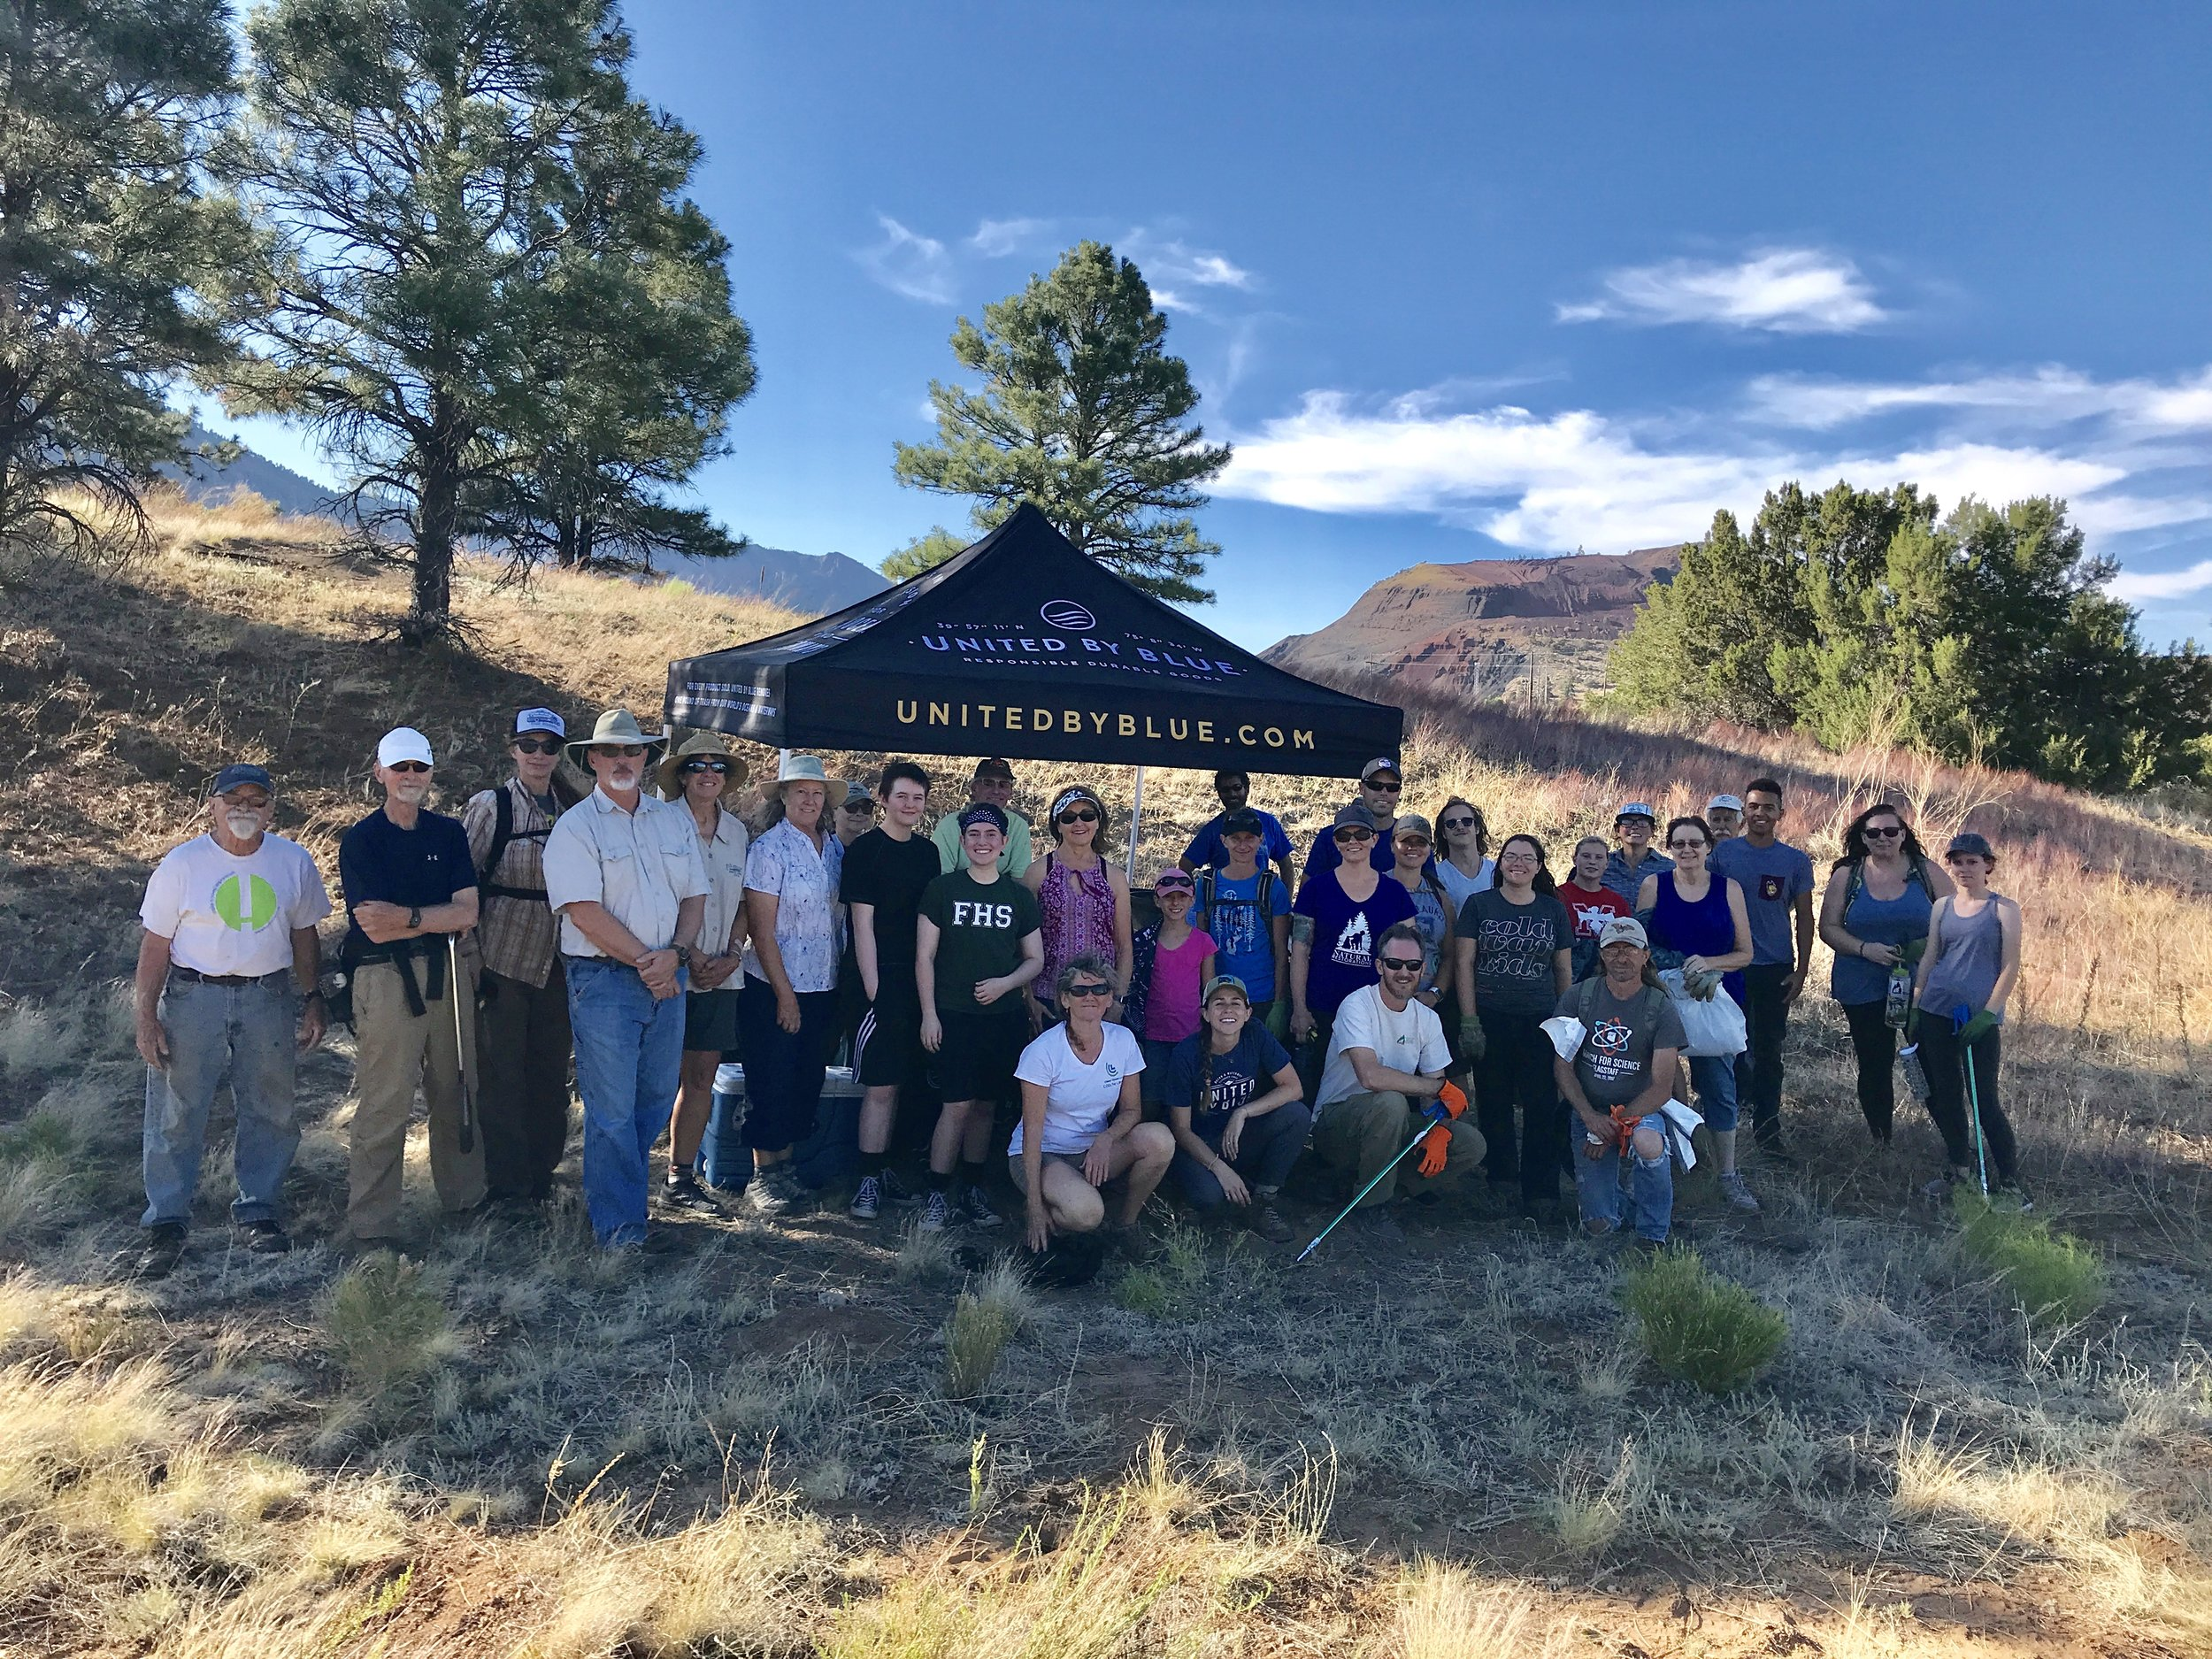 06/29/18 - Cleanup along the Rio de Flag in Flagstaff with United By Blue, Peace Surplus, City of Flagstaff, and Friends of Rio de Flag.Click HERE to view the project.